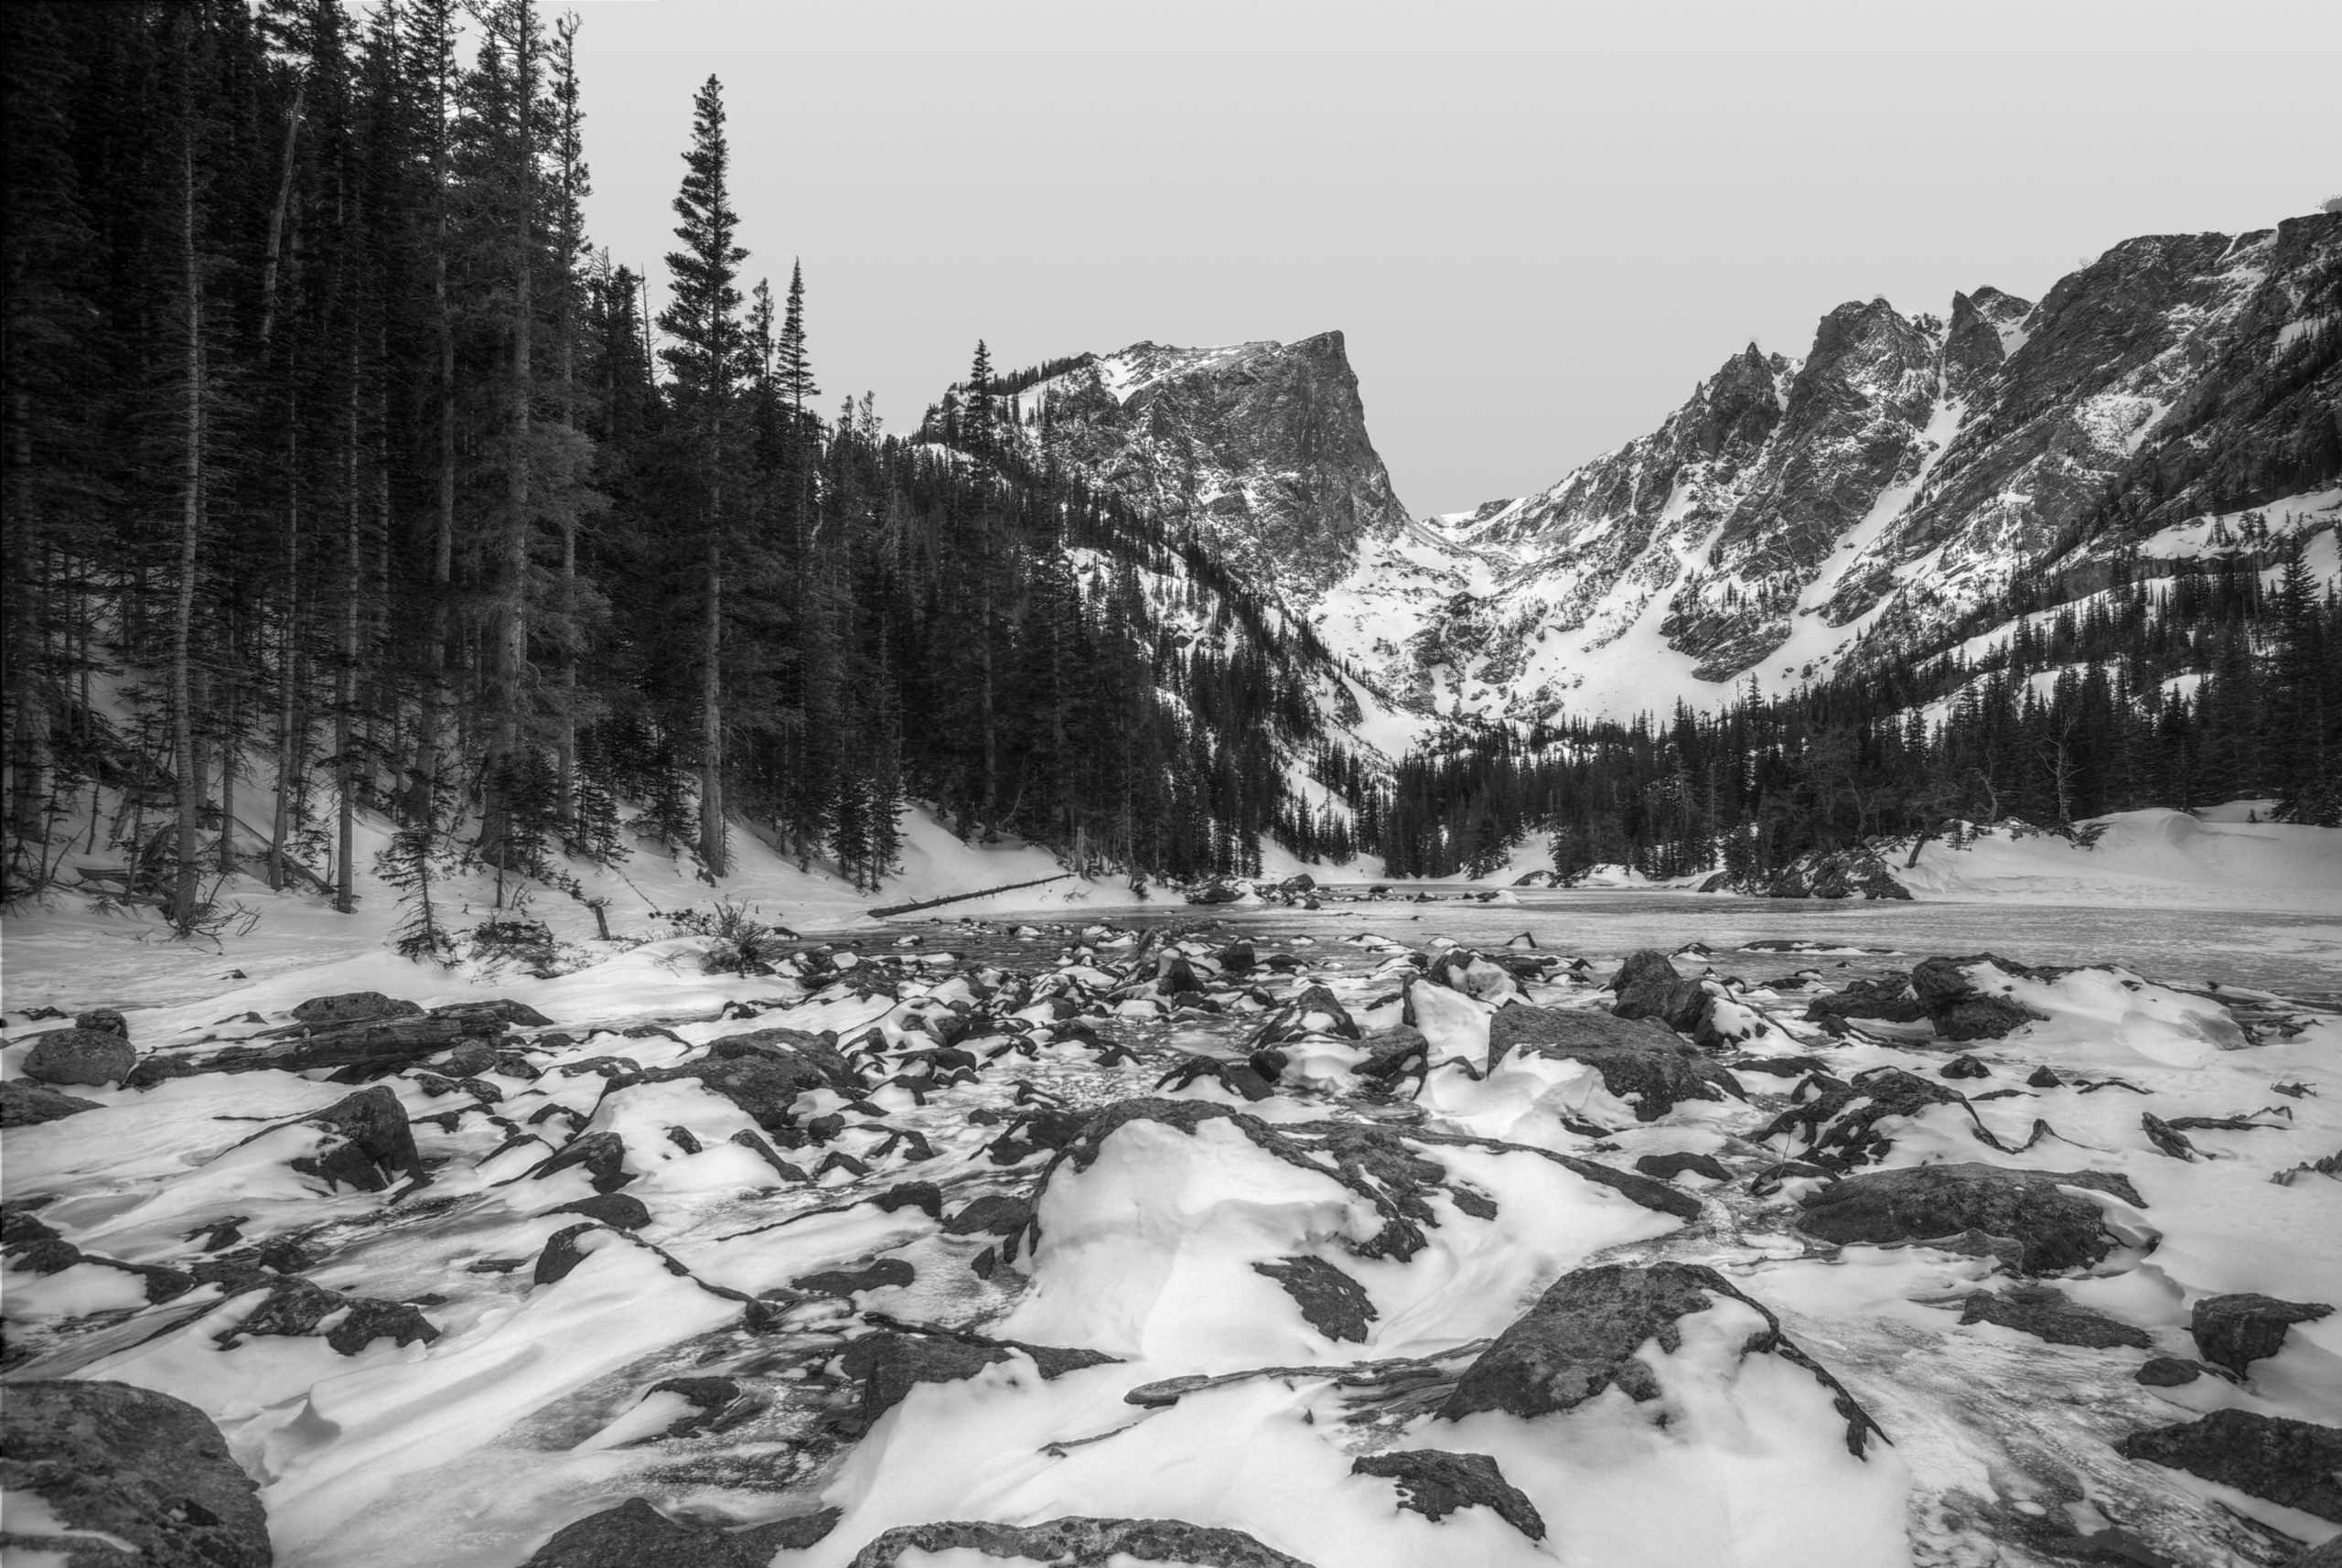 Winter at Dream Lake